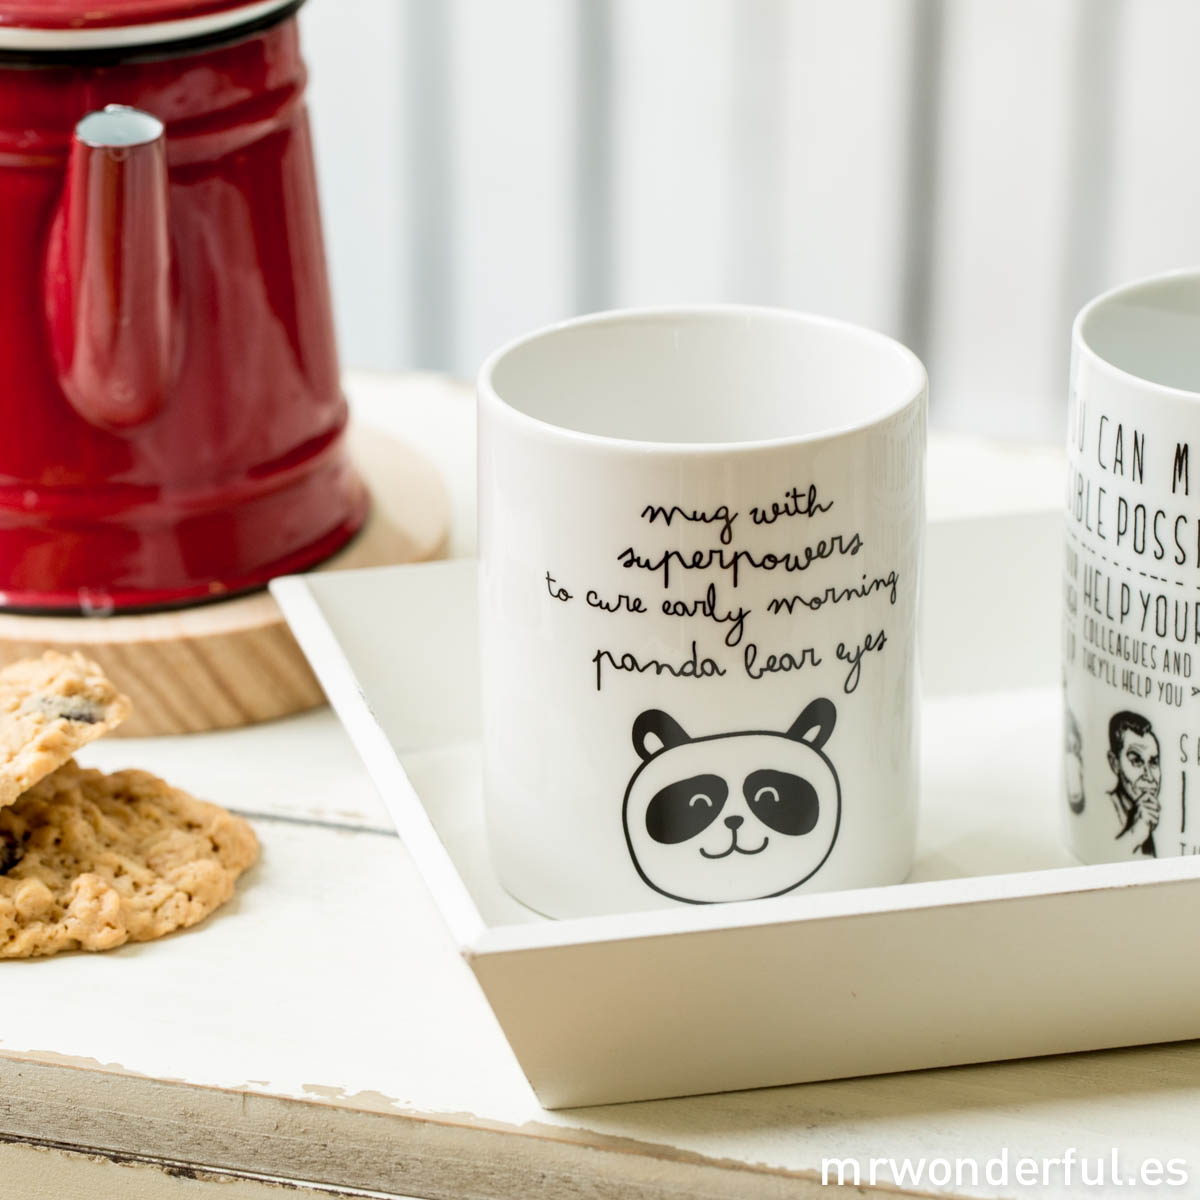 Conjunto_tazas_mrwonderful_English_01042014-3